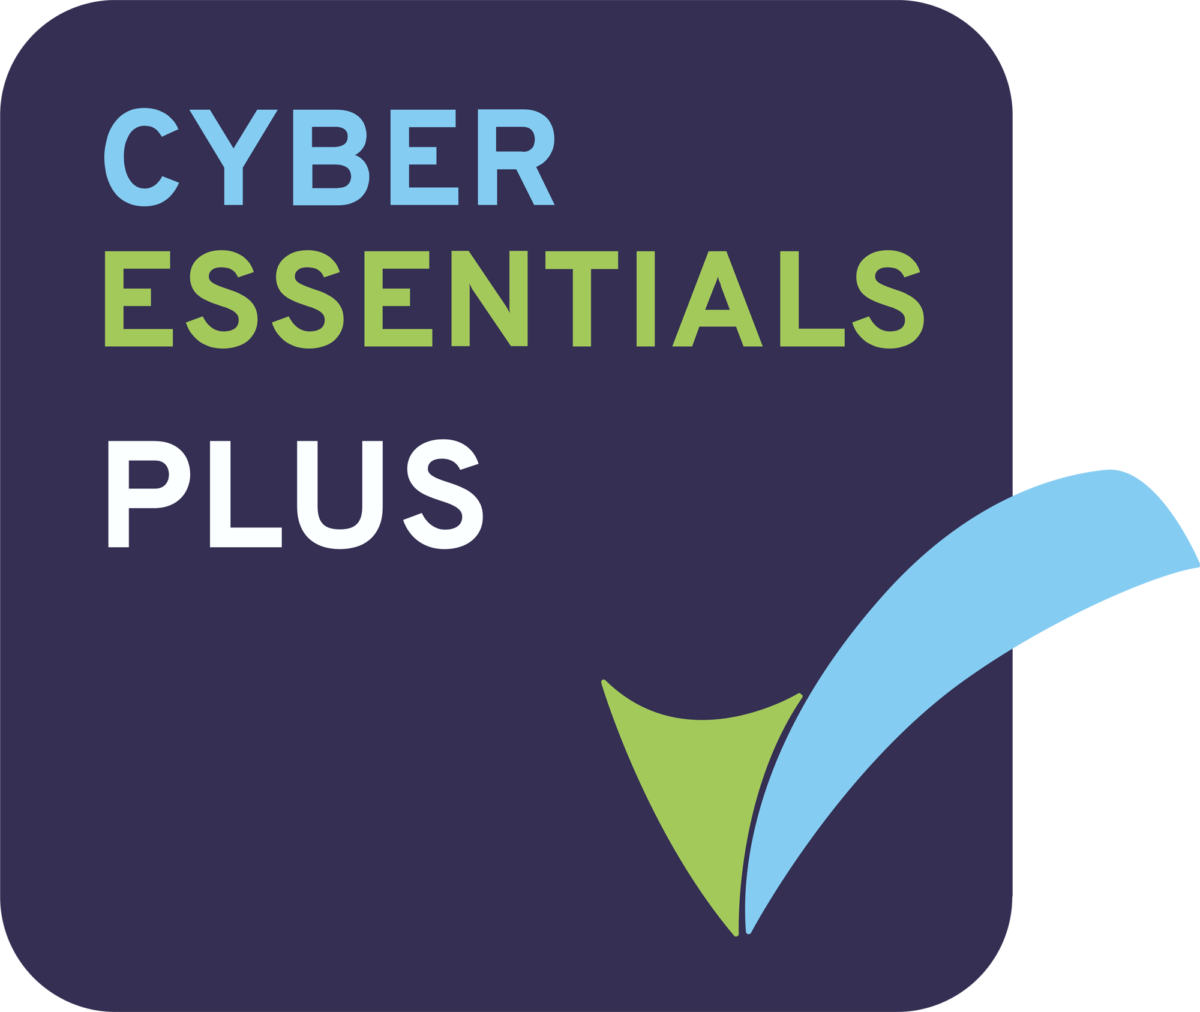 A-S:L Demonstrates Commitment To Online Security With Cyber Essentials PLUS Certification